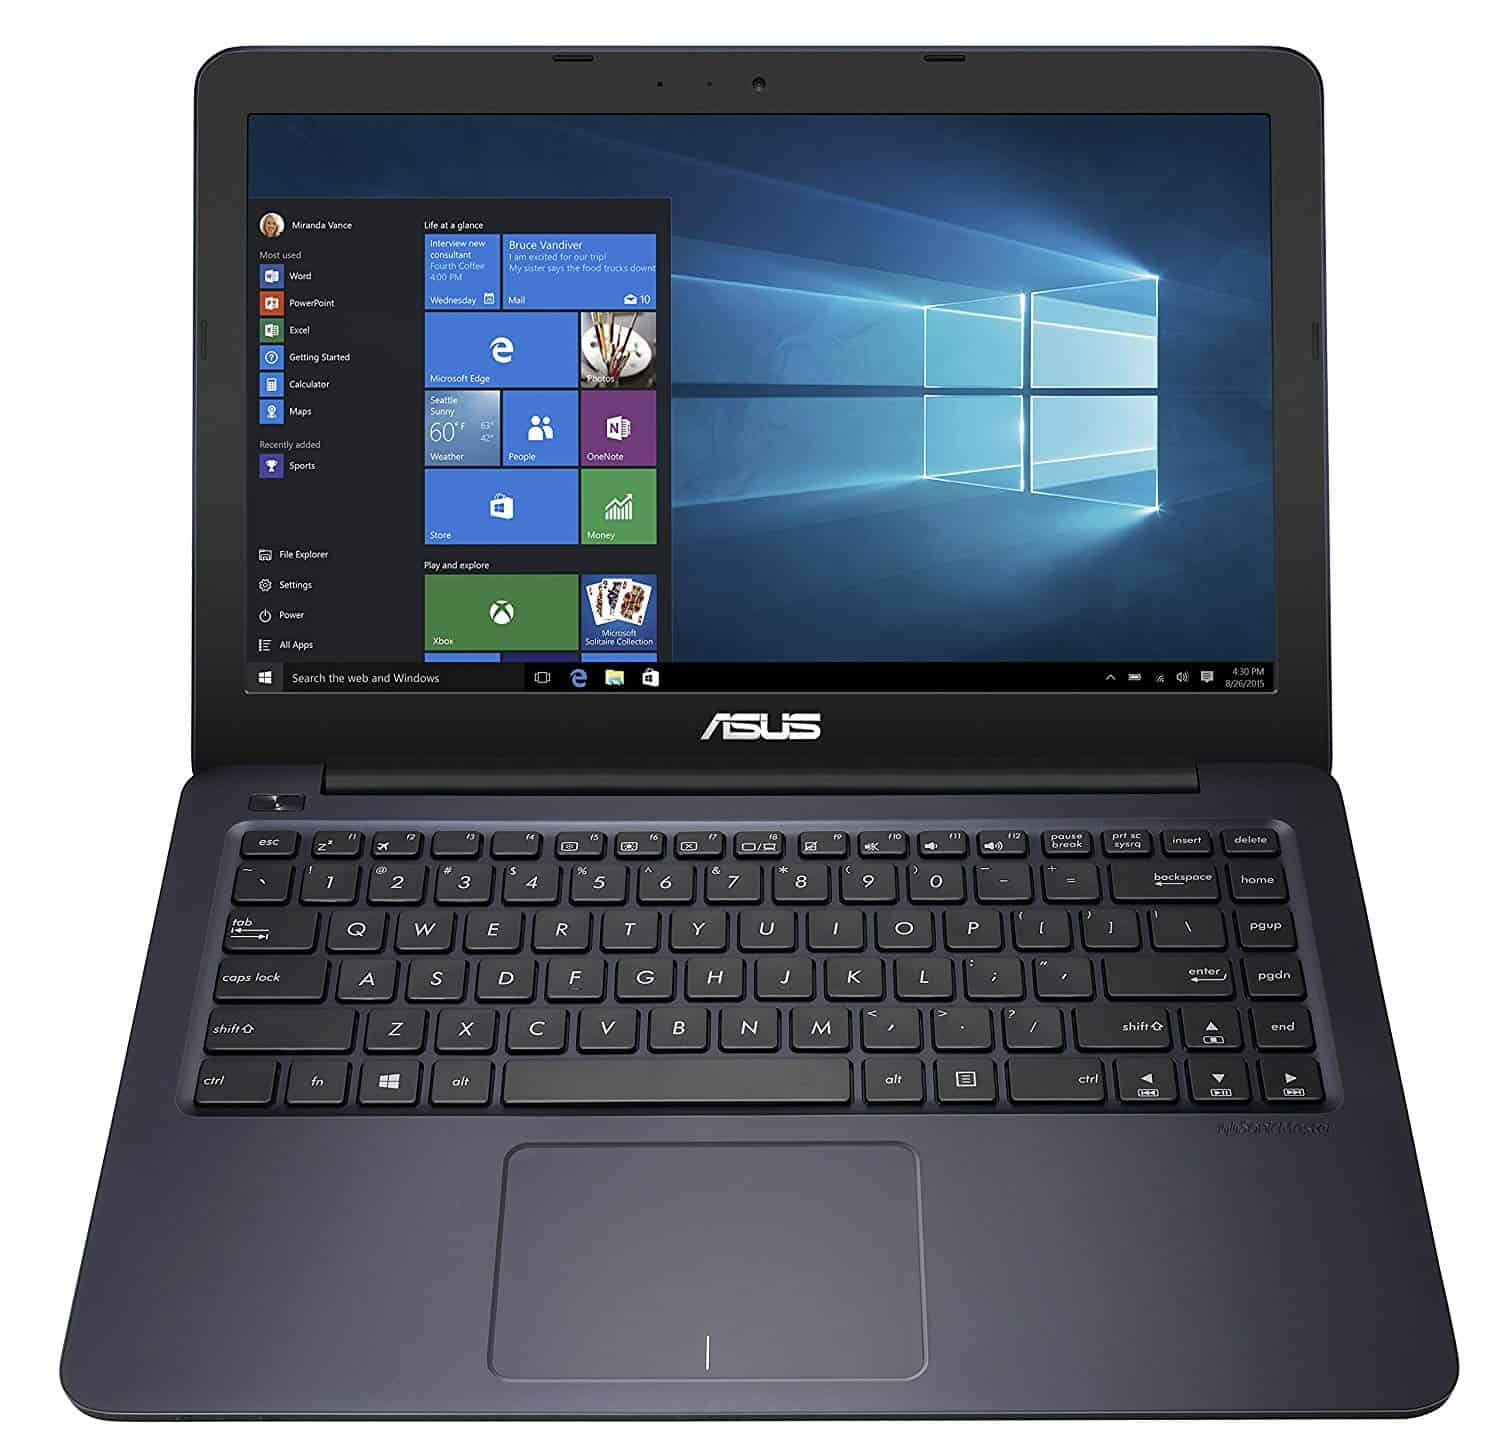 ASUS E402MA Review